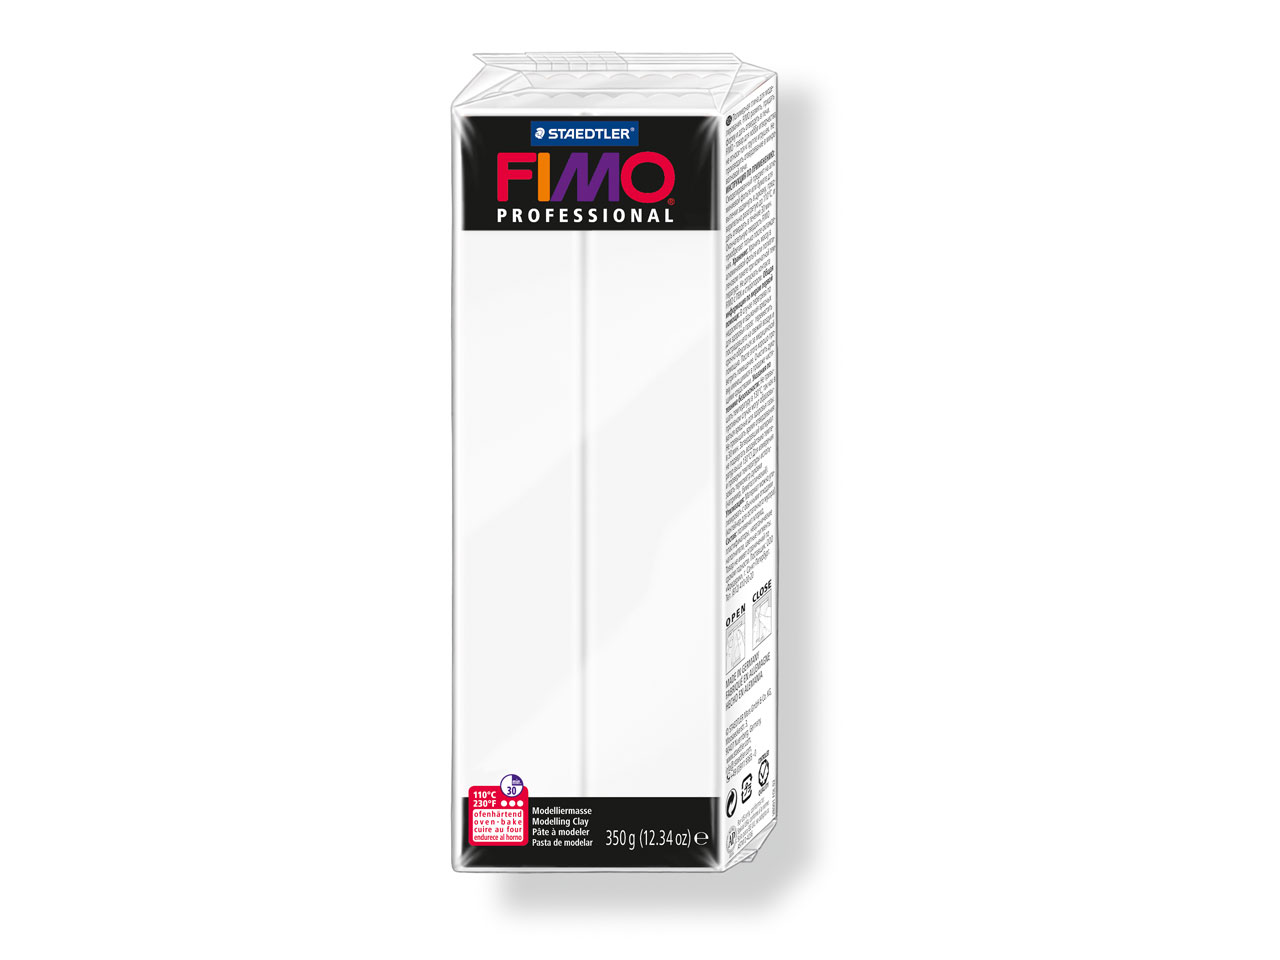 FIMO-PROFESSIONAL-350G-POLYMER-MODELLING-OVEN-BAKE-CLAY-29-COLOURS-INC-DOLL-ART